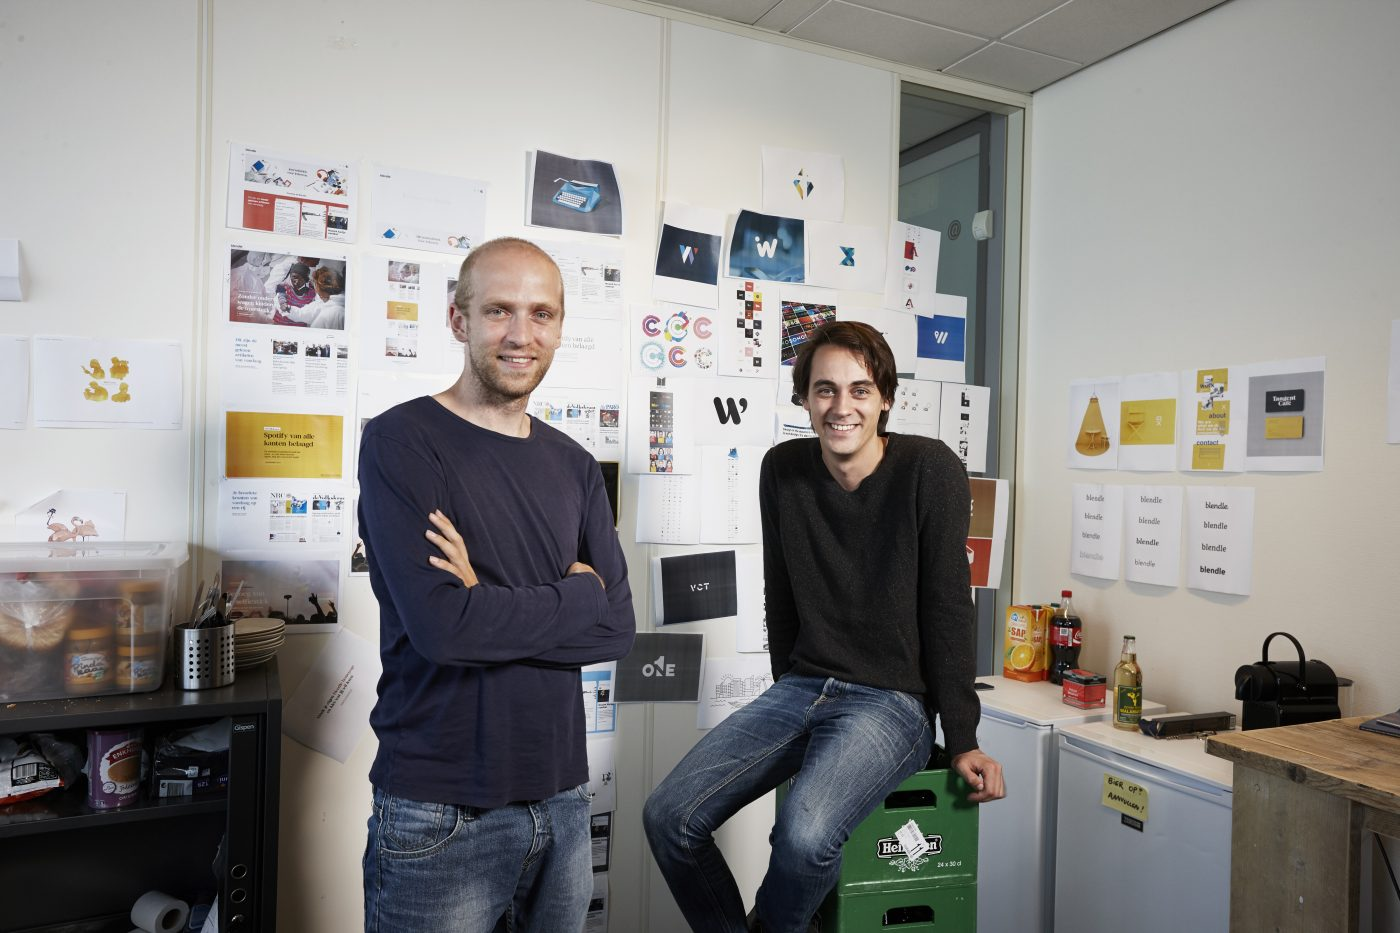 journalism platfrom Blender founders, Marten Blankesteijn and Alexander Klöpping